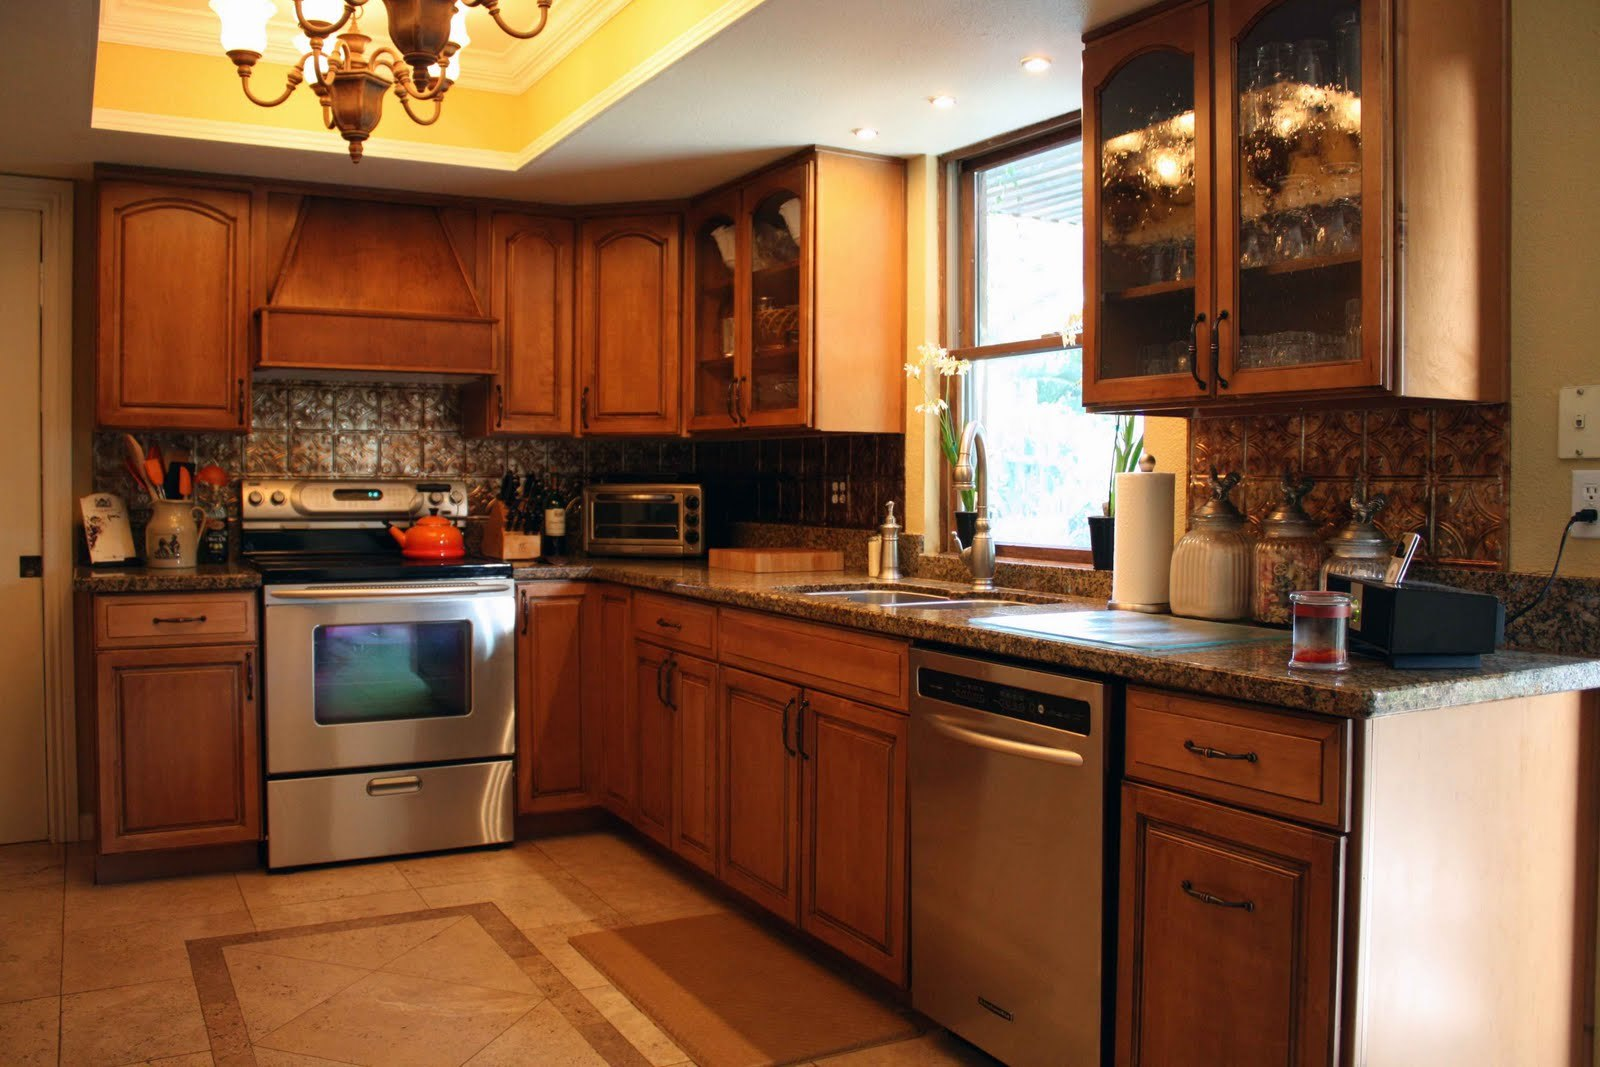 Cleaning Oak Kitchen Cabinets Incredible Kitchen Awesome Oak Wood Kitchen Cabinets Cleaning With